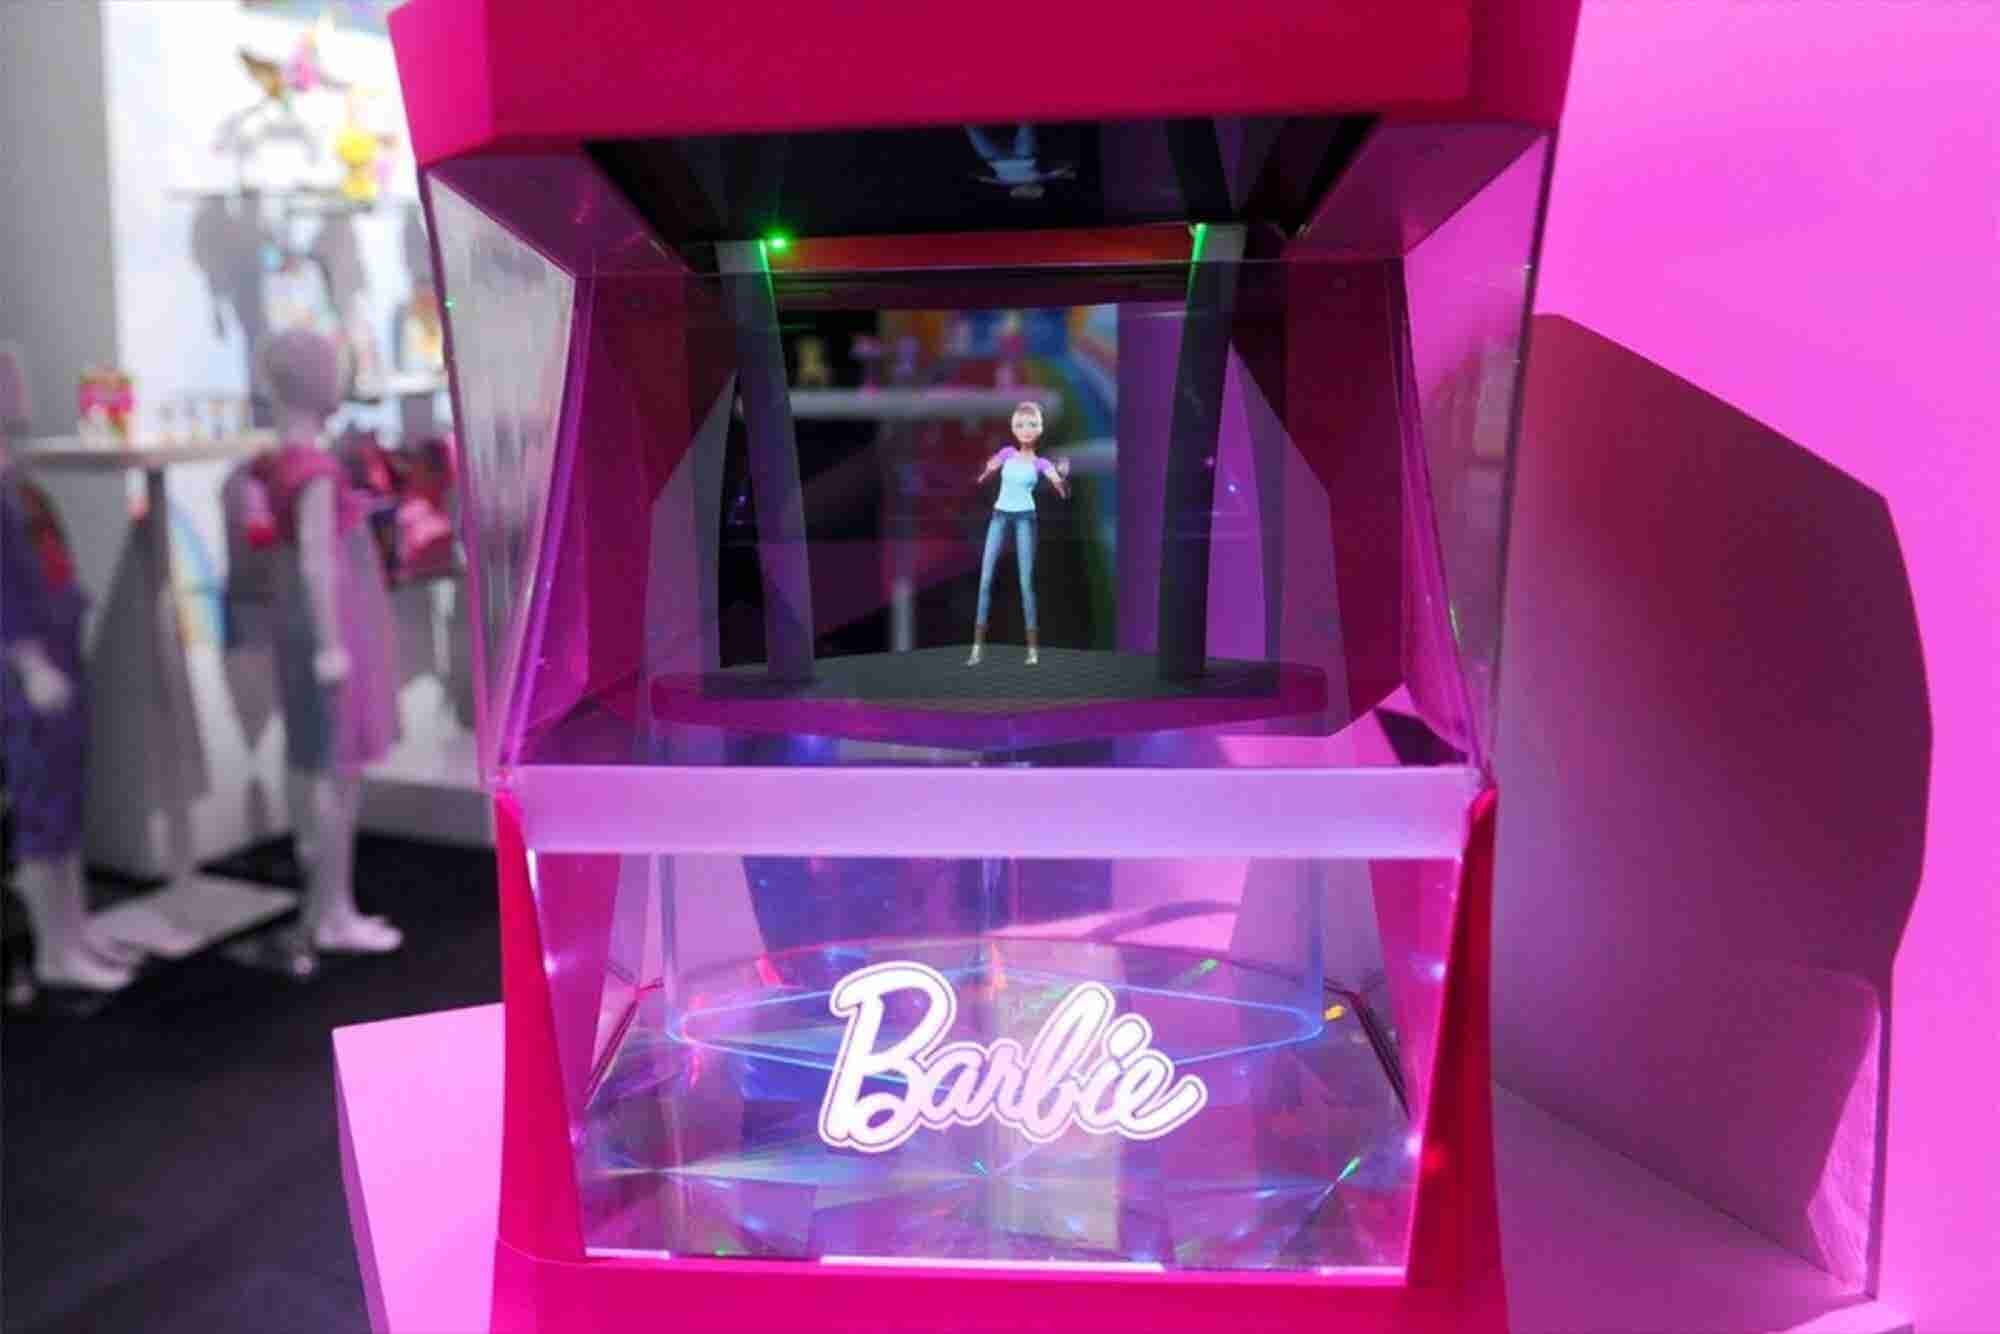 Barbie Is a Hologram and Now Even Playtime Is Automated